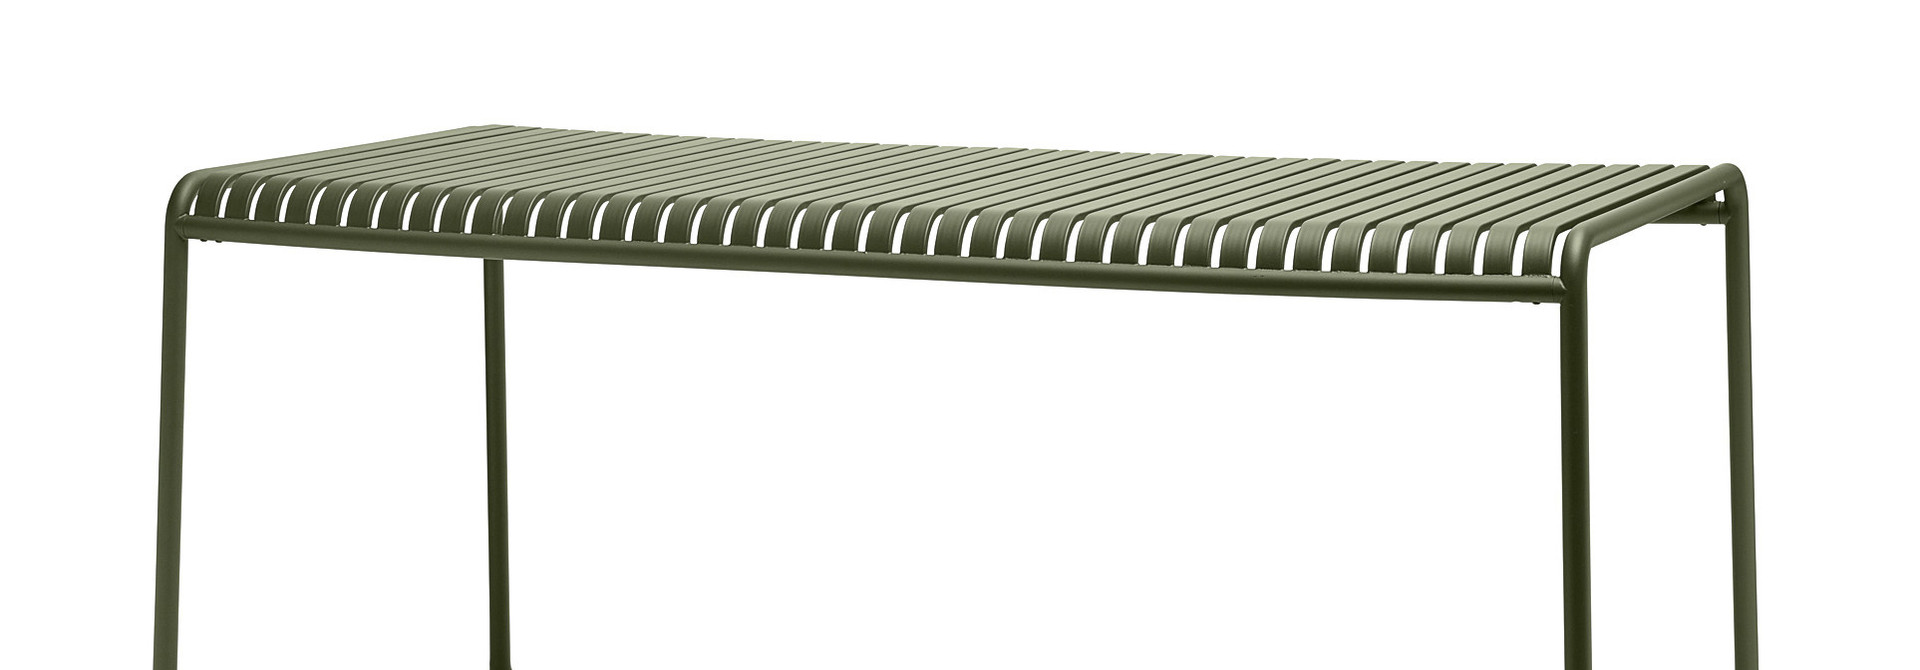 Palissade Table - L